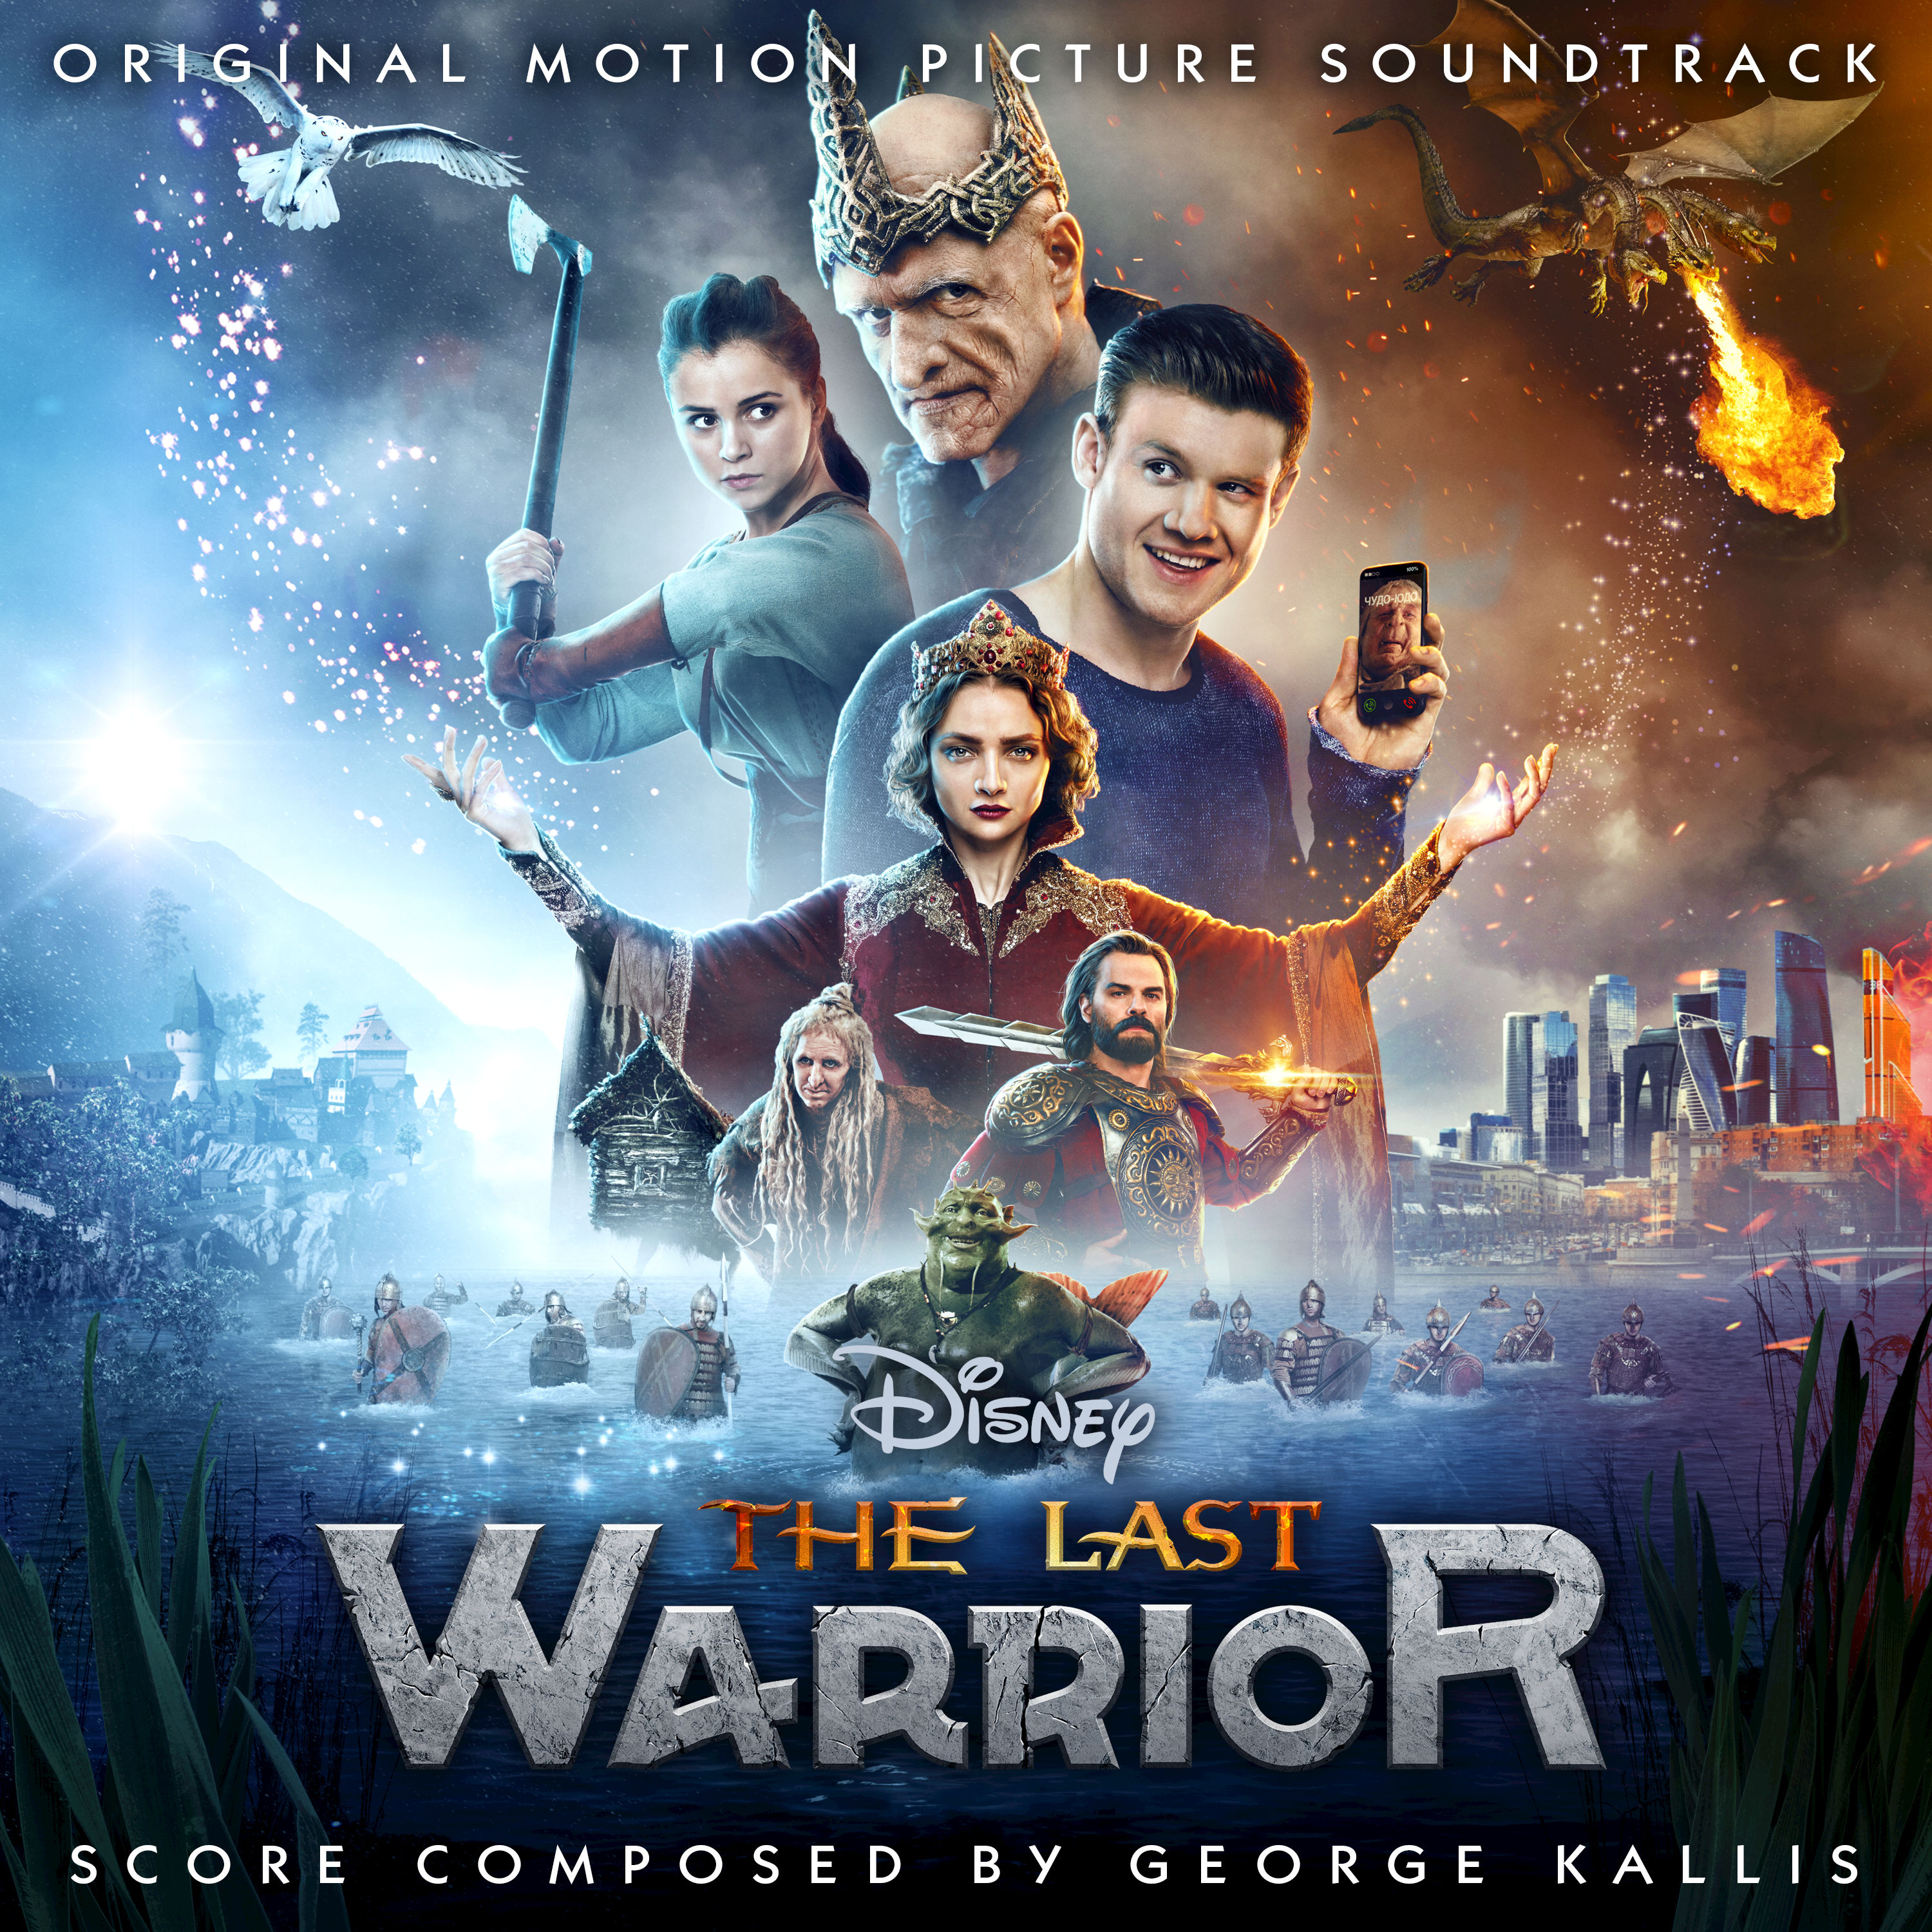 'The Last Warrior' Released By Walt Disney Records